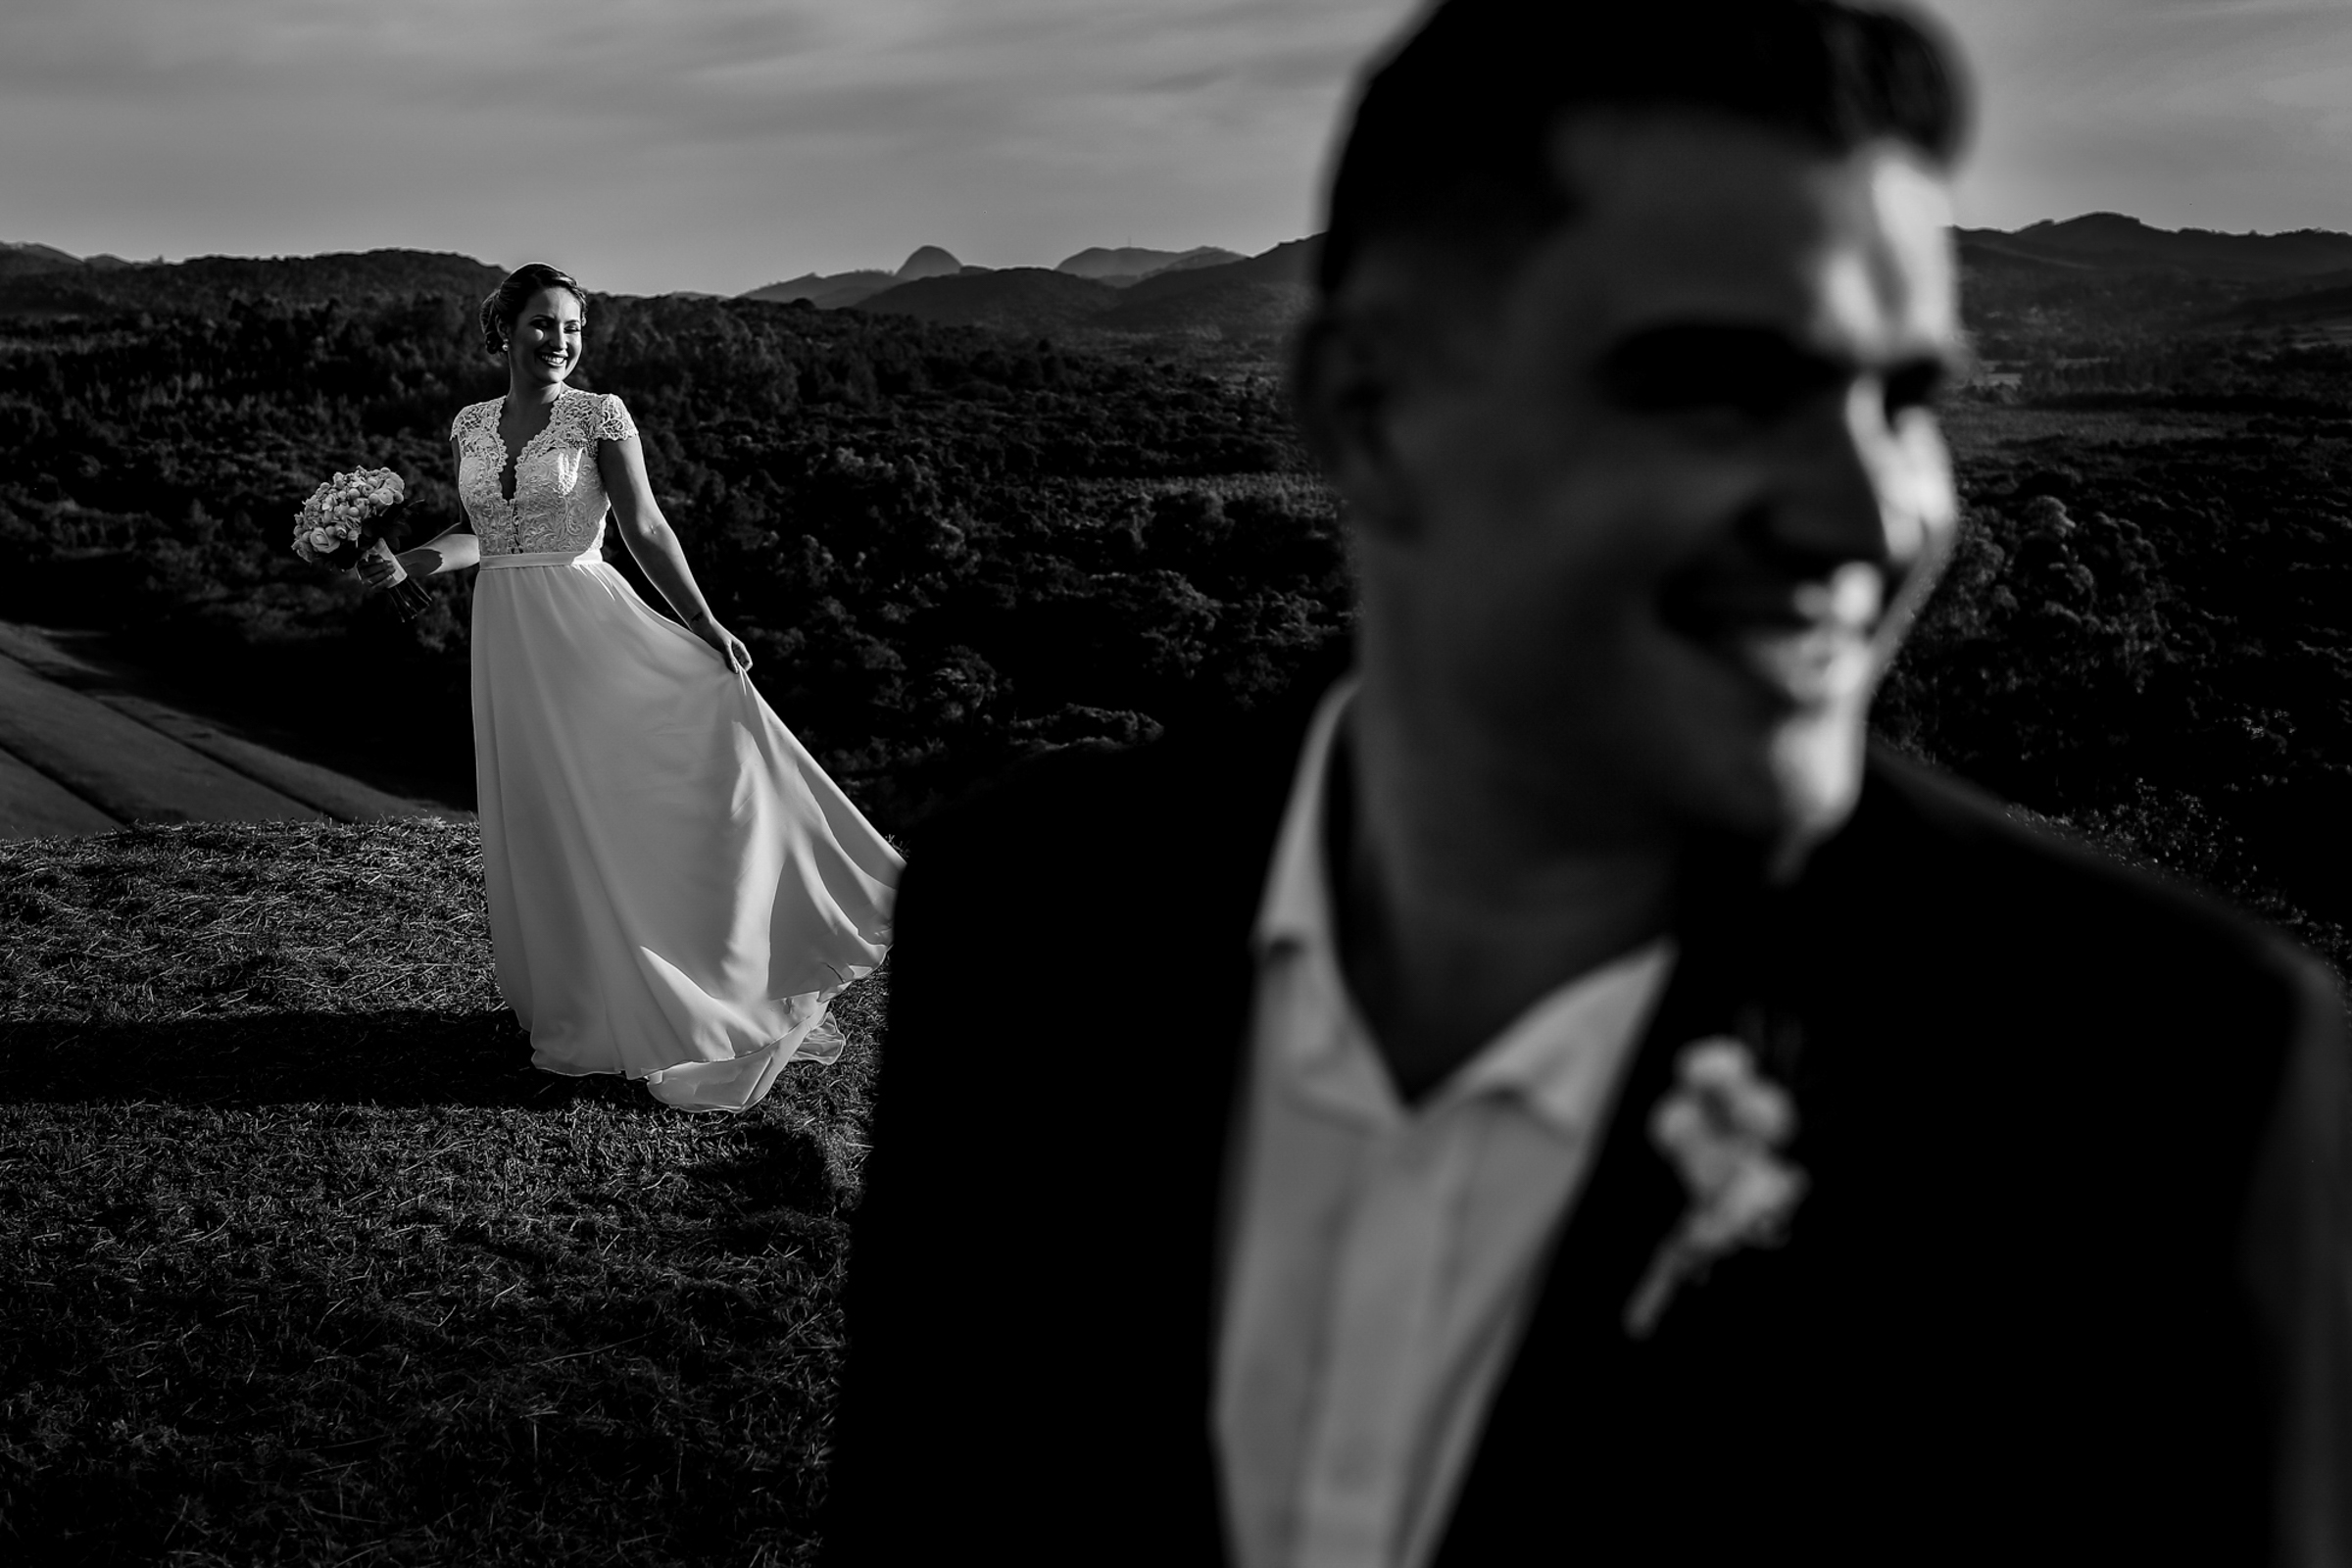 Bride shines in the background - photo by Área da Fotografia